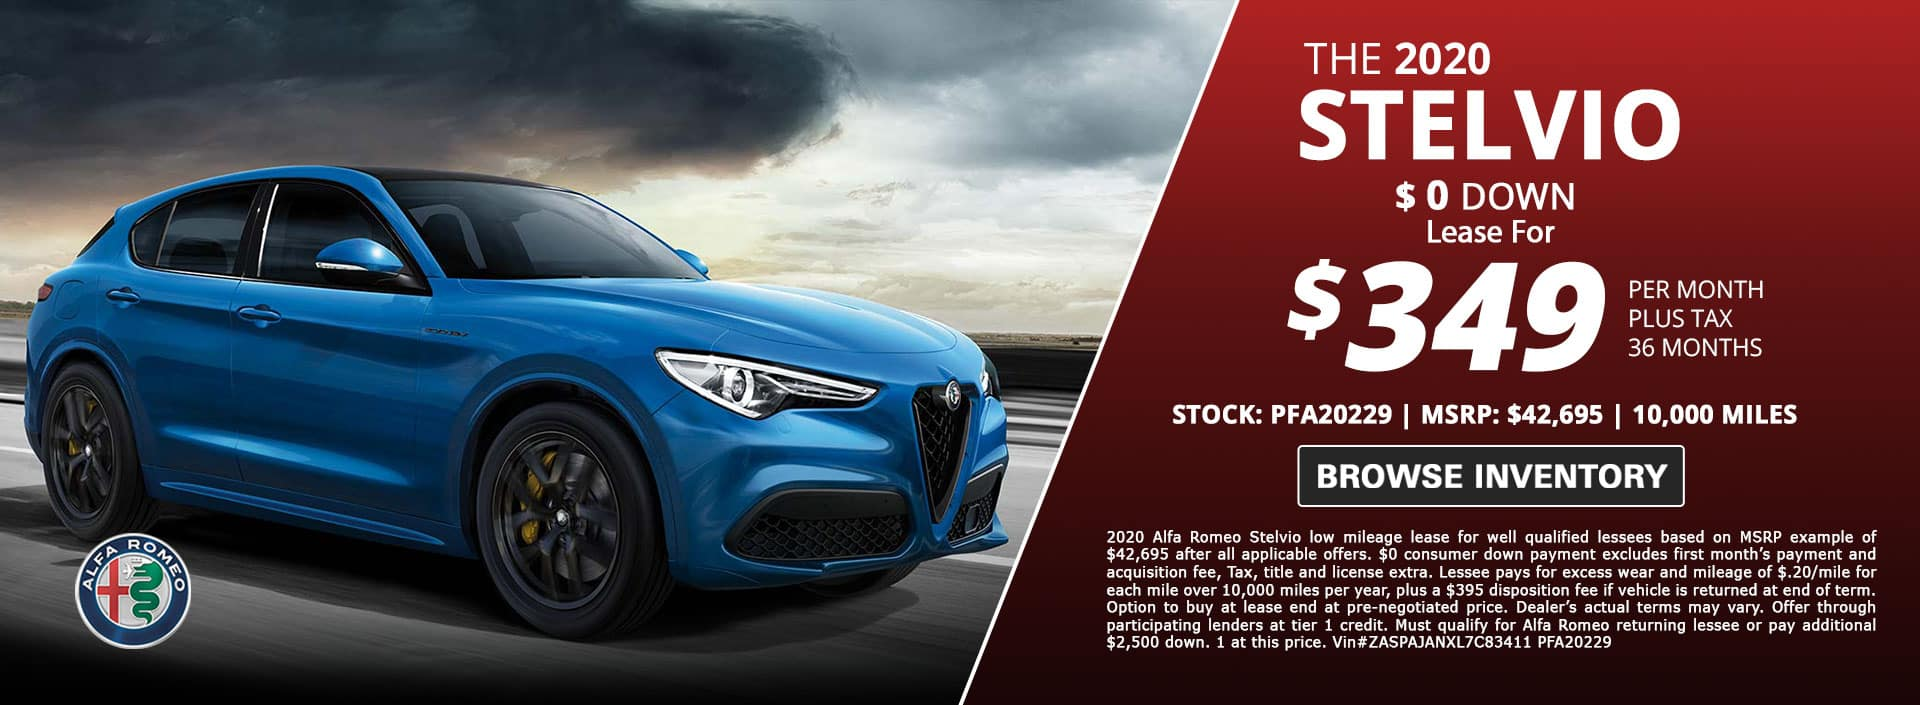 Stelvio Lease Special